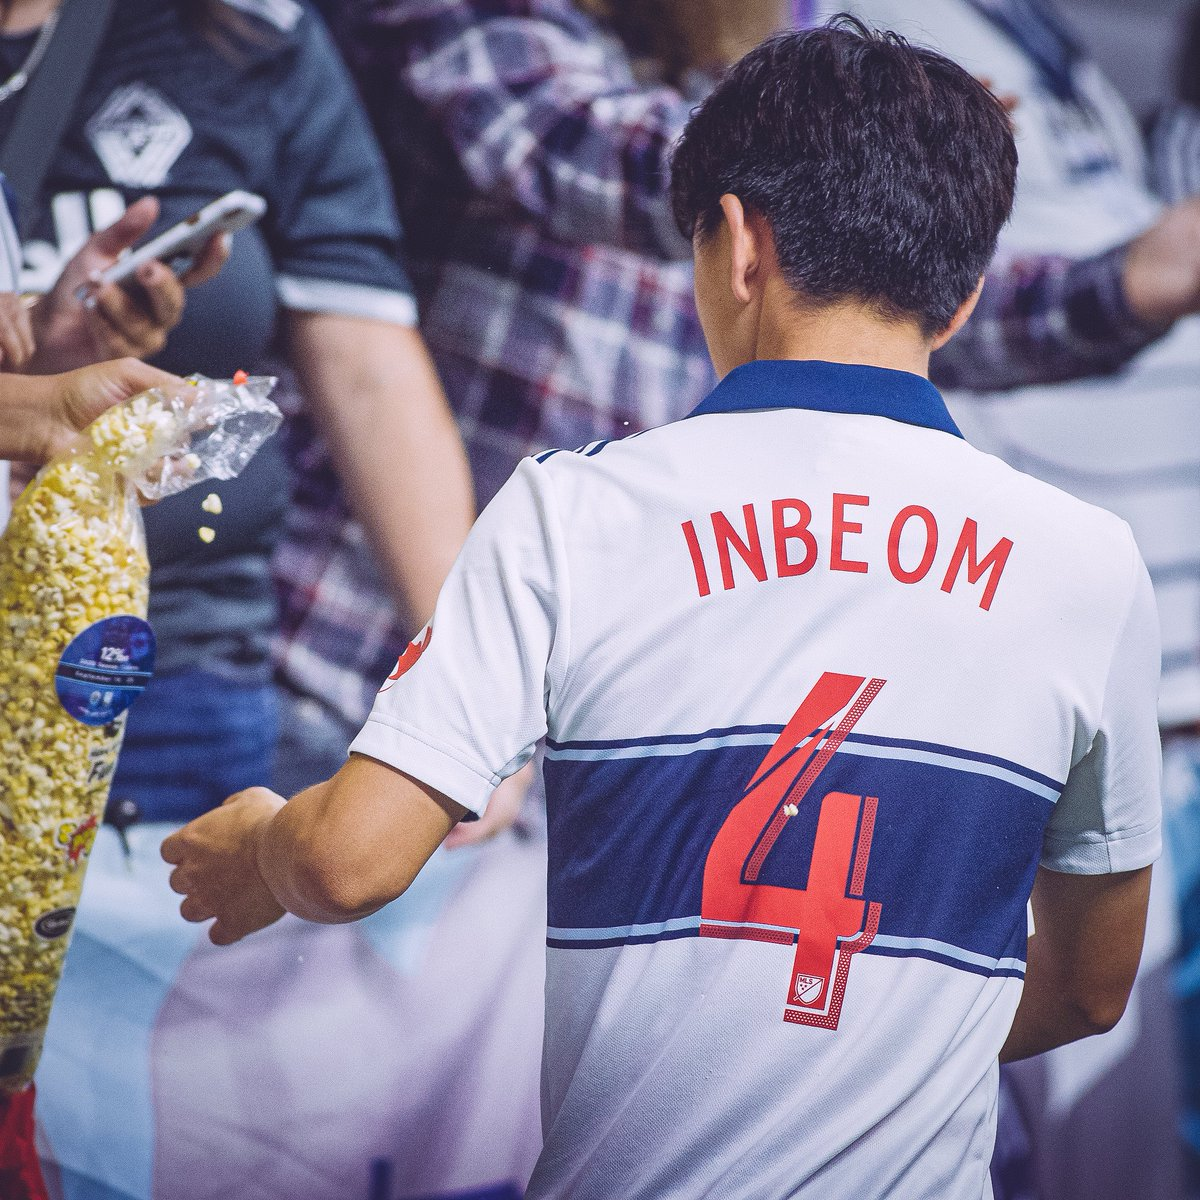 12 DAYS OF GIVEAWAYS   Cause 4 celebration. We're giving away 4 Inbeom jerseys!   RT for your chance to win. *popcorn not included*  4 days left to save 12% on 2020 season tickets :  http:// ow.ly/pYAW50w9fOx     <br>http://pic.twitter.com/DSnSnR3QNm